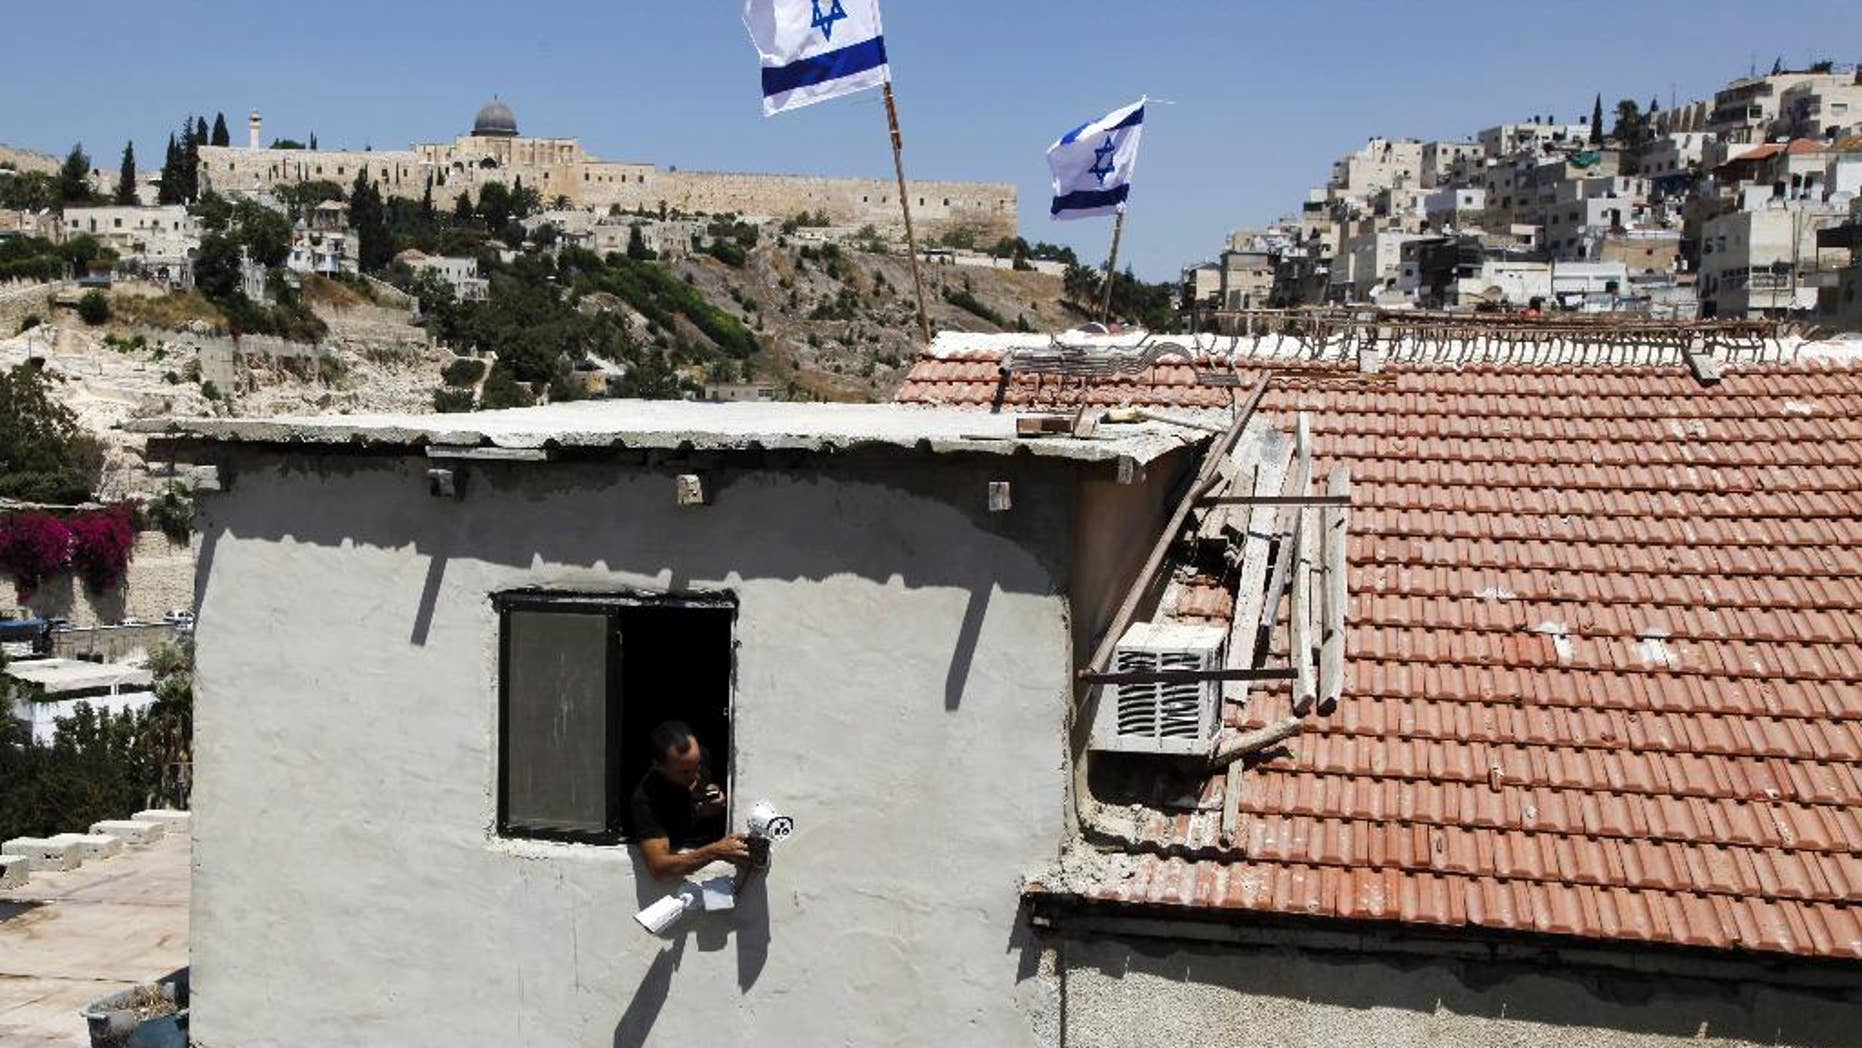 A man is seen from a window as Israeli flags fly on top of a house in Silwan neighborhood of east Jerusalem Thursday, Aug. 27, 2015. Ultra-nationalist Israelis have taken over the building in the heart of an Arab neighborhood in east Jerusalem, raising fears of fresh violence in the tense area. A small group of activists from the Ateret Cohanim settler organization moved into the building on Thursday. It was the latest in a wave of settler advances since nationalist Jews began buying up properties in Palestinian neighborhoods two decades ago. (AP Photo/Mahmoud Illean)